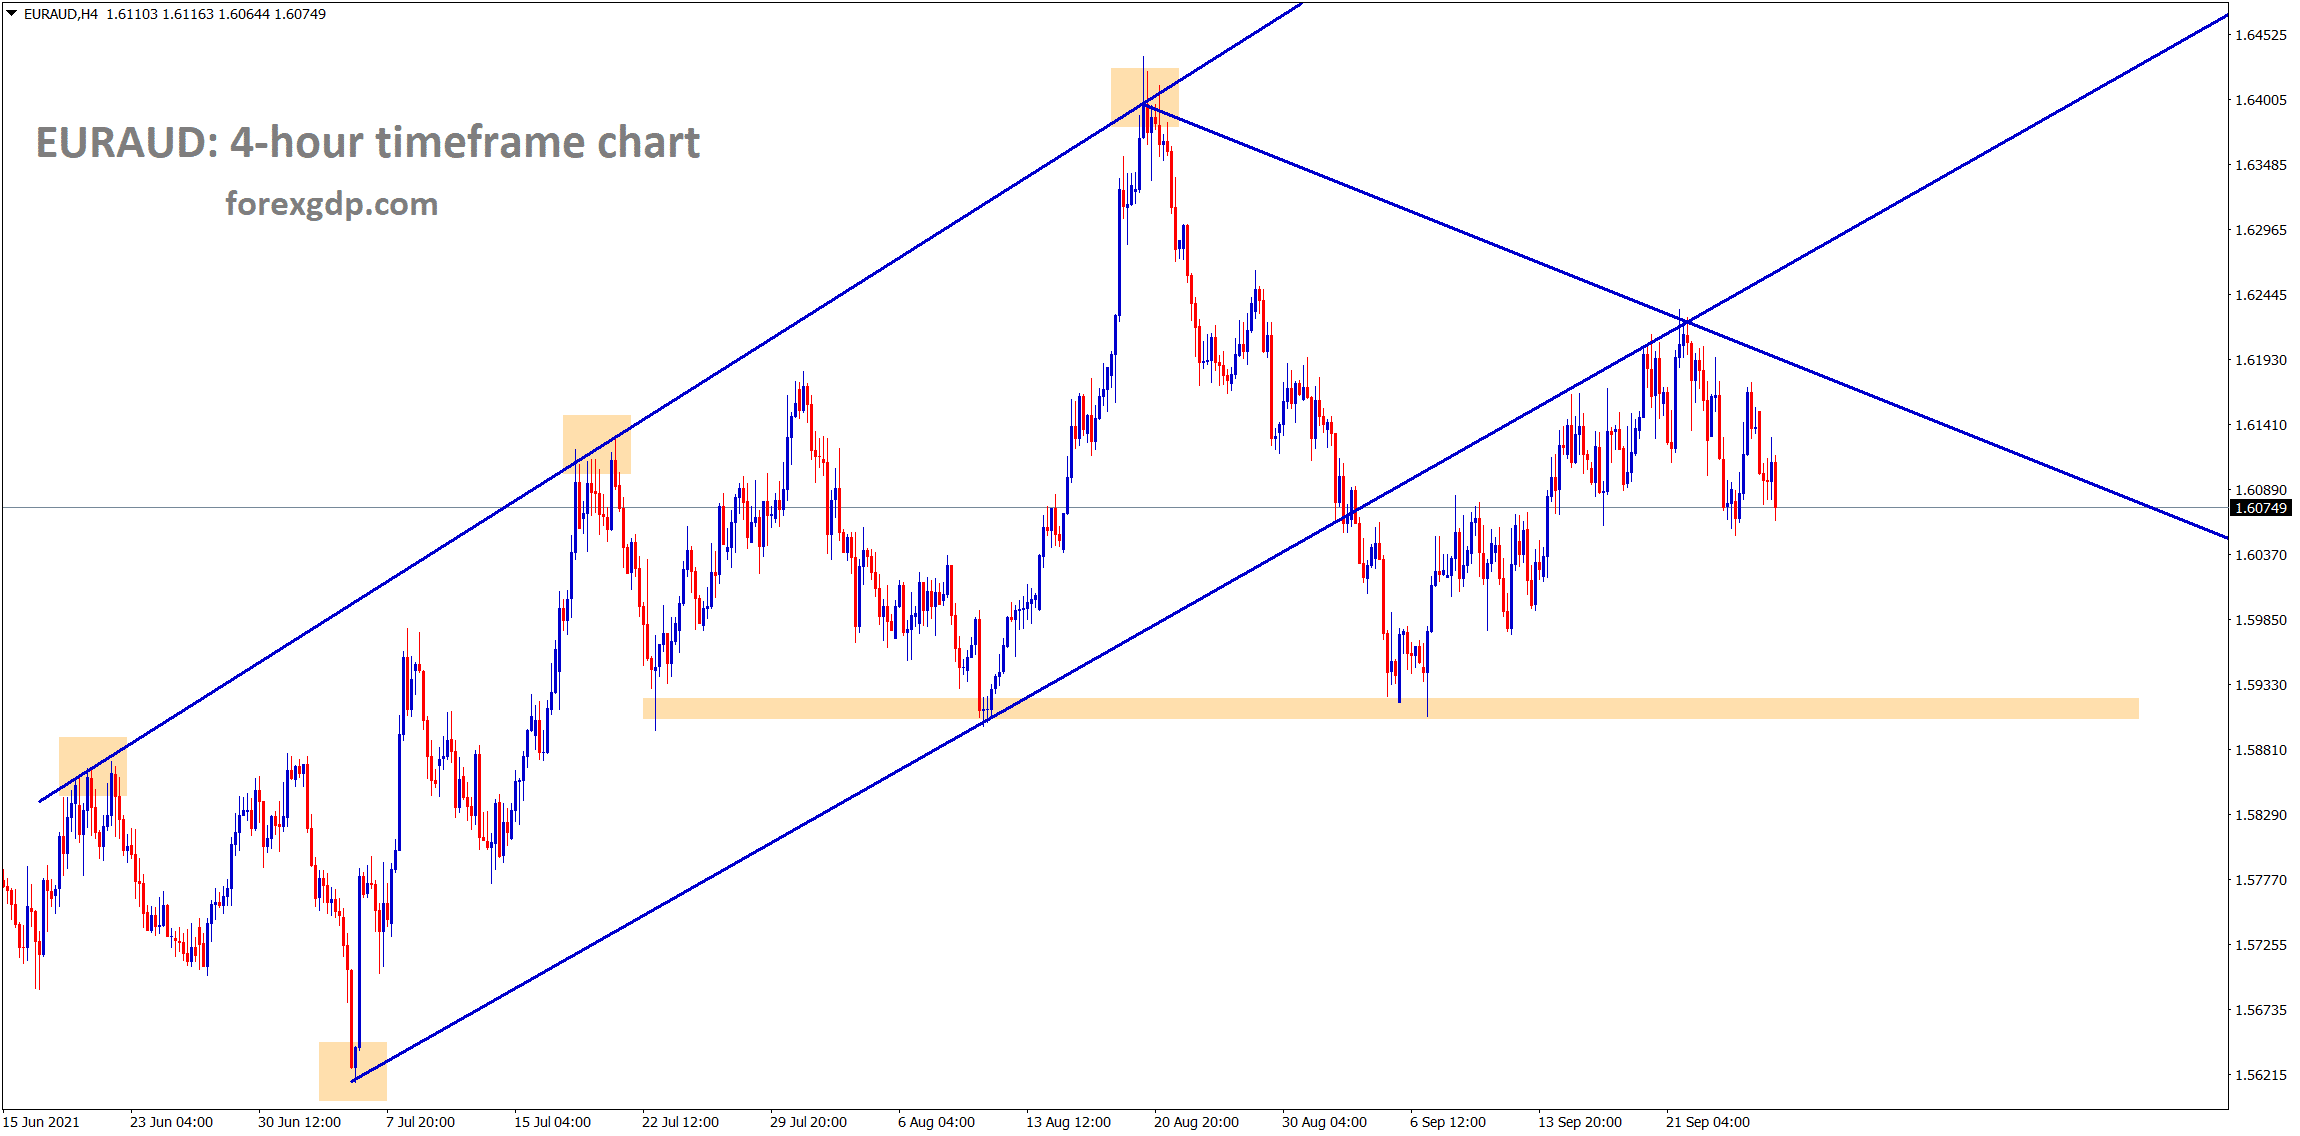 EURAUD is falling after retesting the previous broken level of an Ascending channel